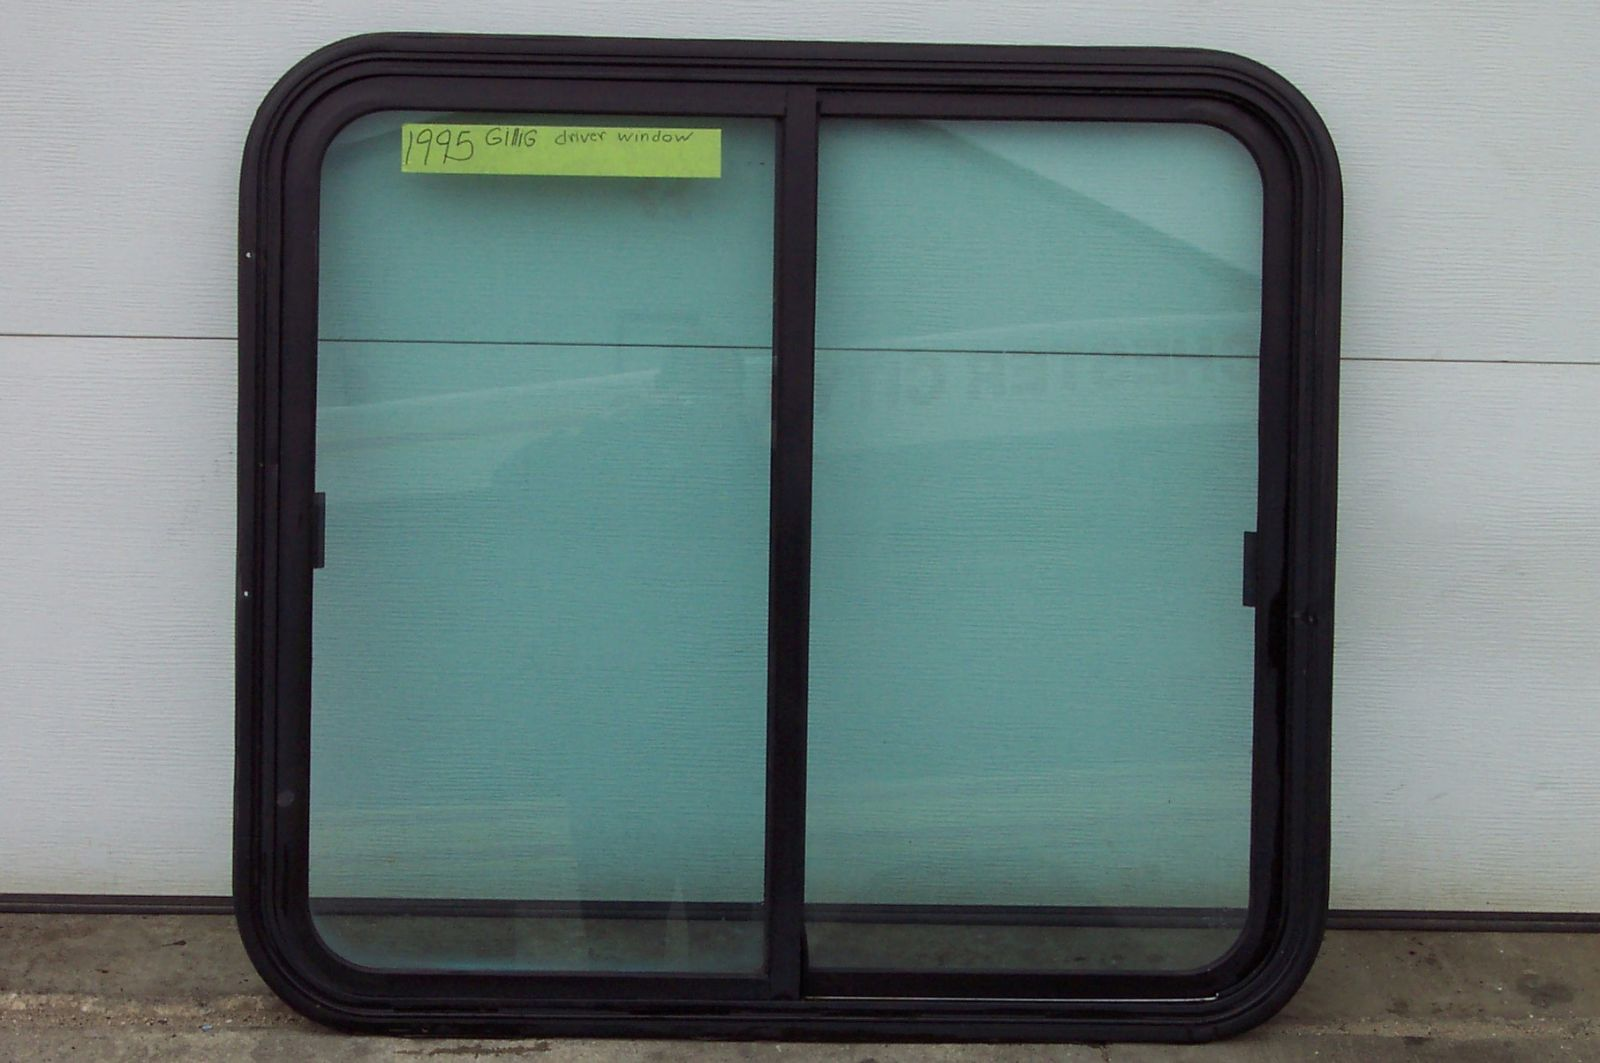 Bus windows for sale, Rochester MN